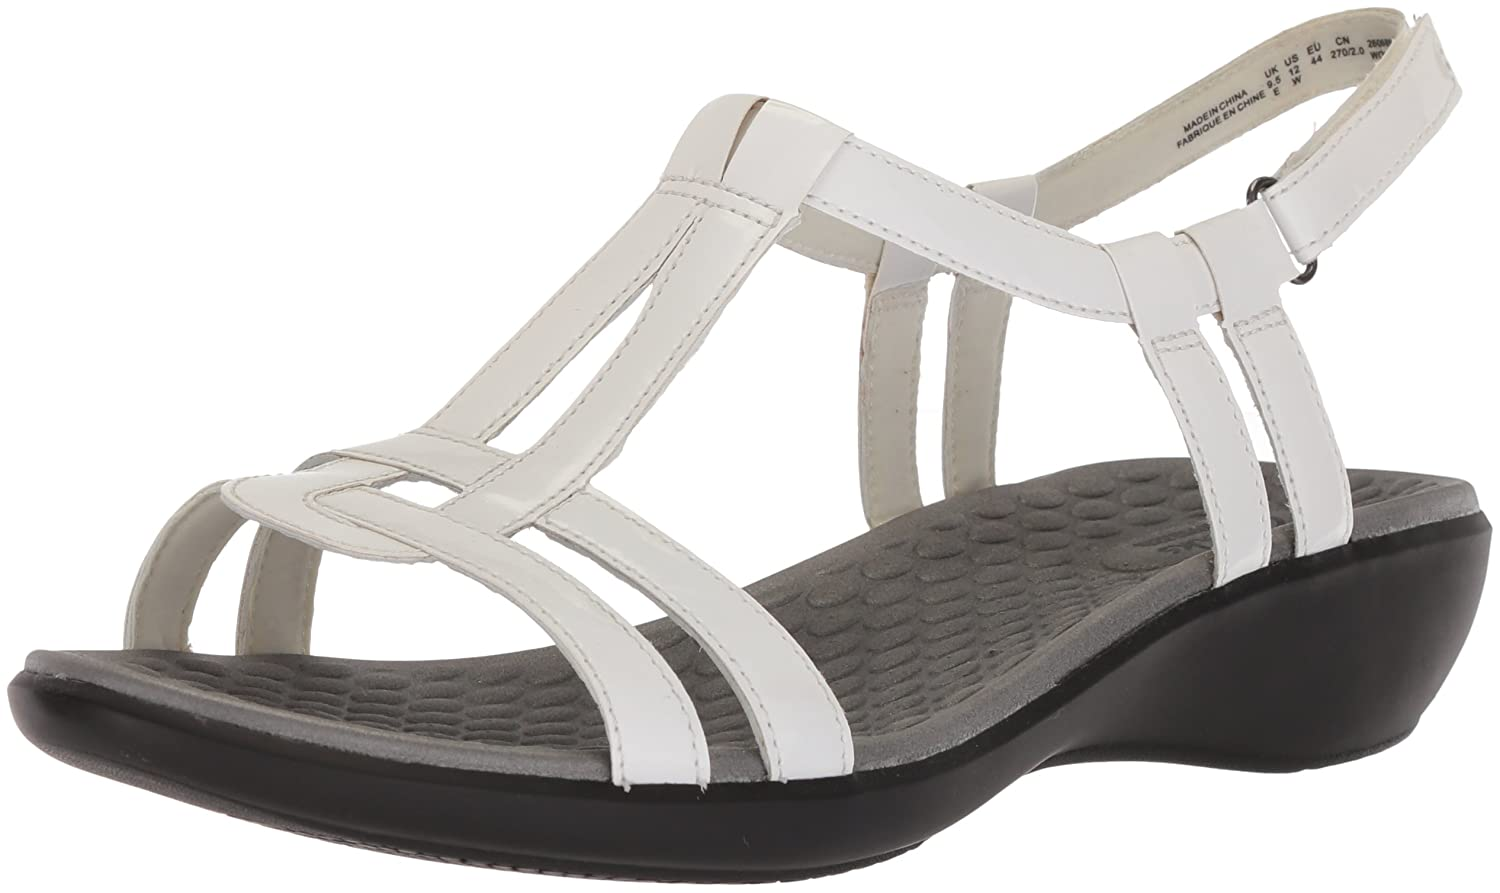 CLARKS Women's Sonar Aster Sandal B00E6UO6IC 5 M US|White Synthetic Patent